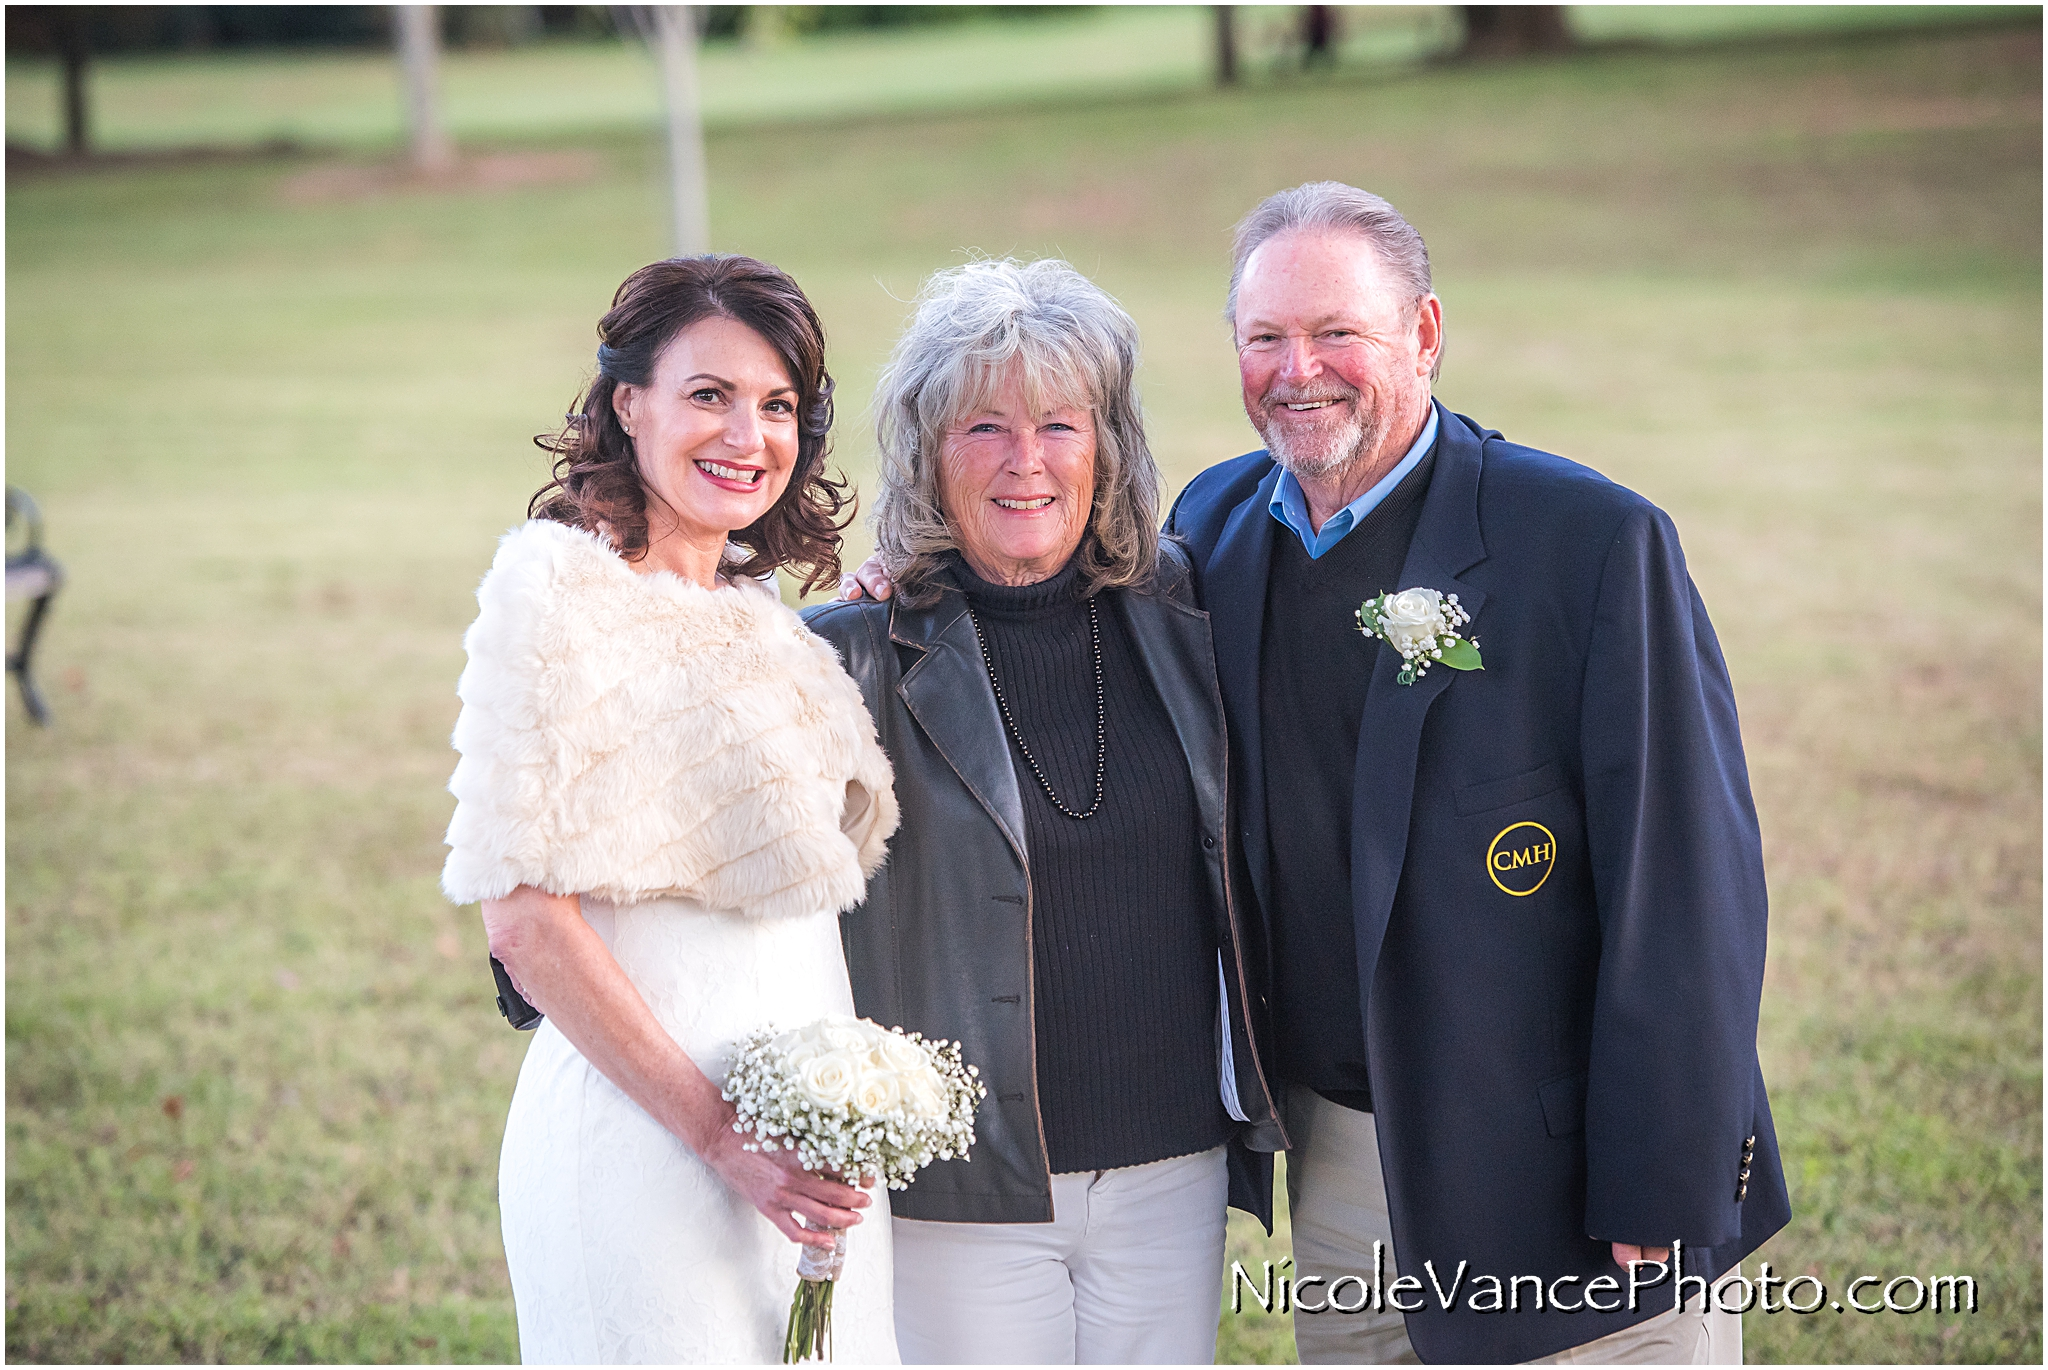 The bride poses with one of her closest friends after the ceremony at Maymont Park.